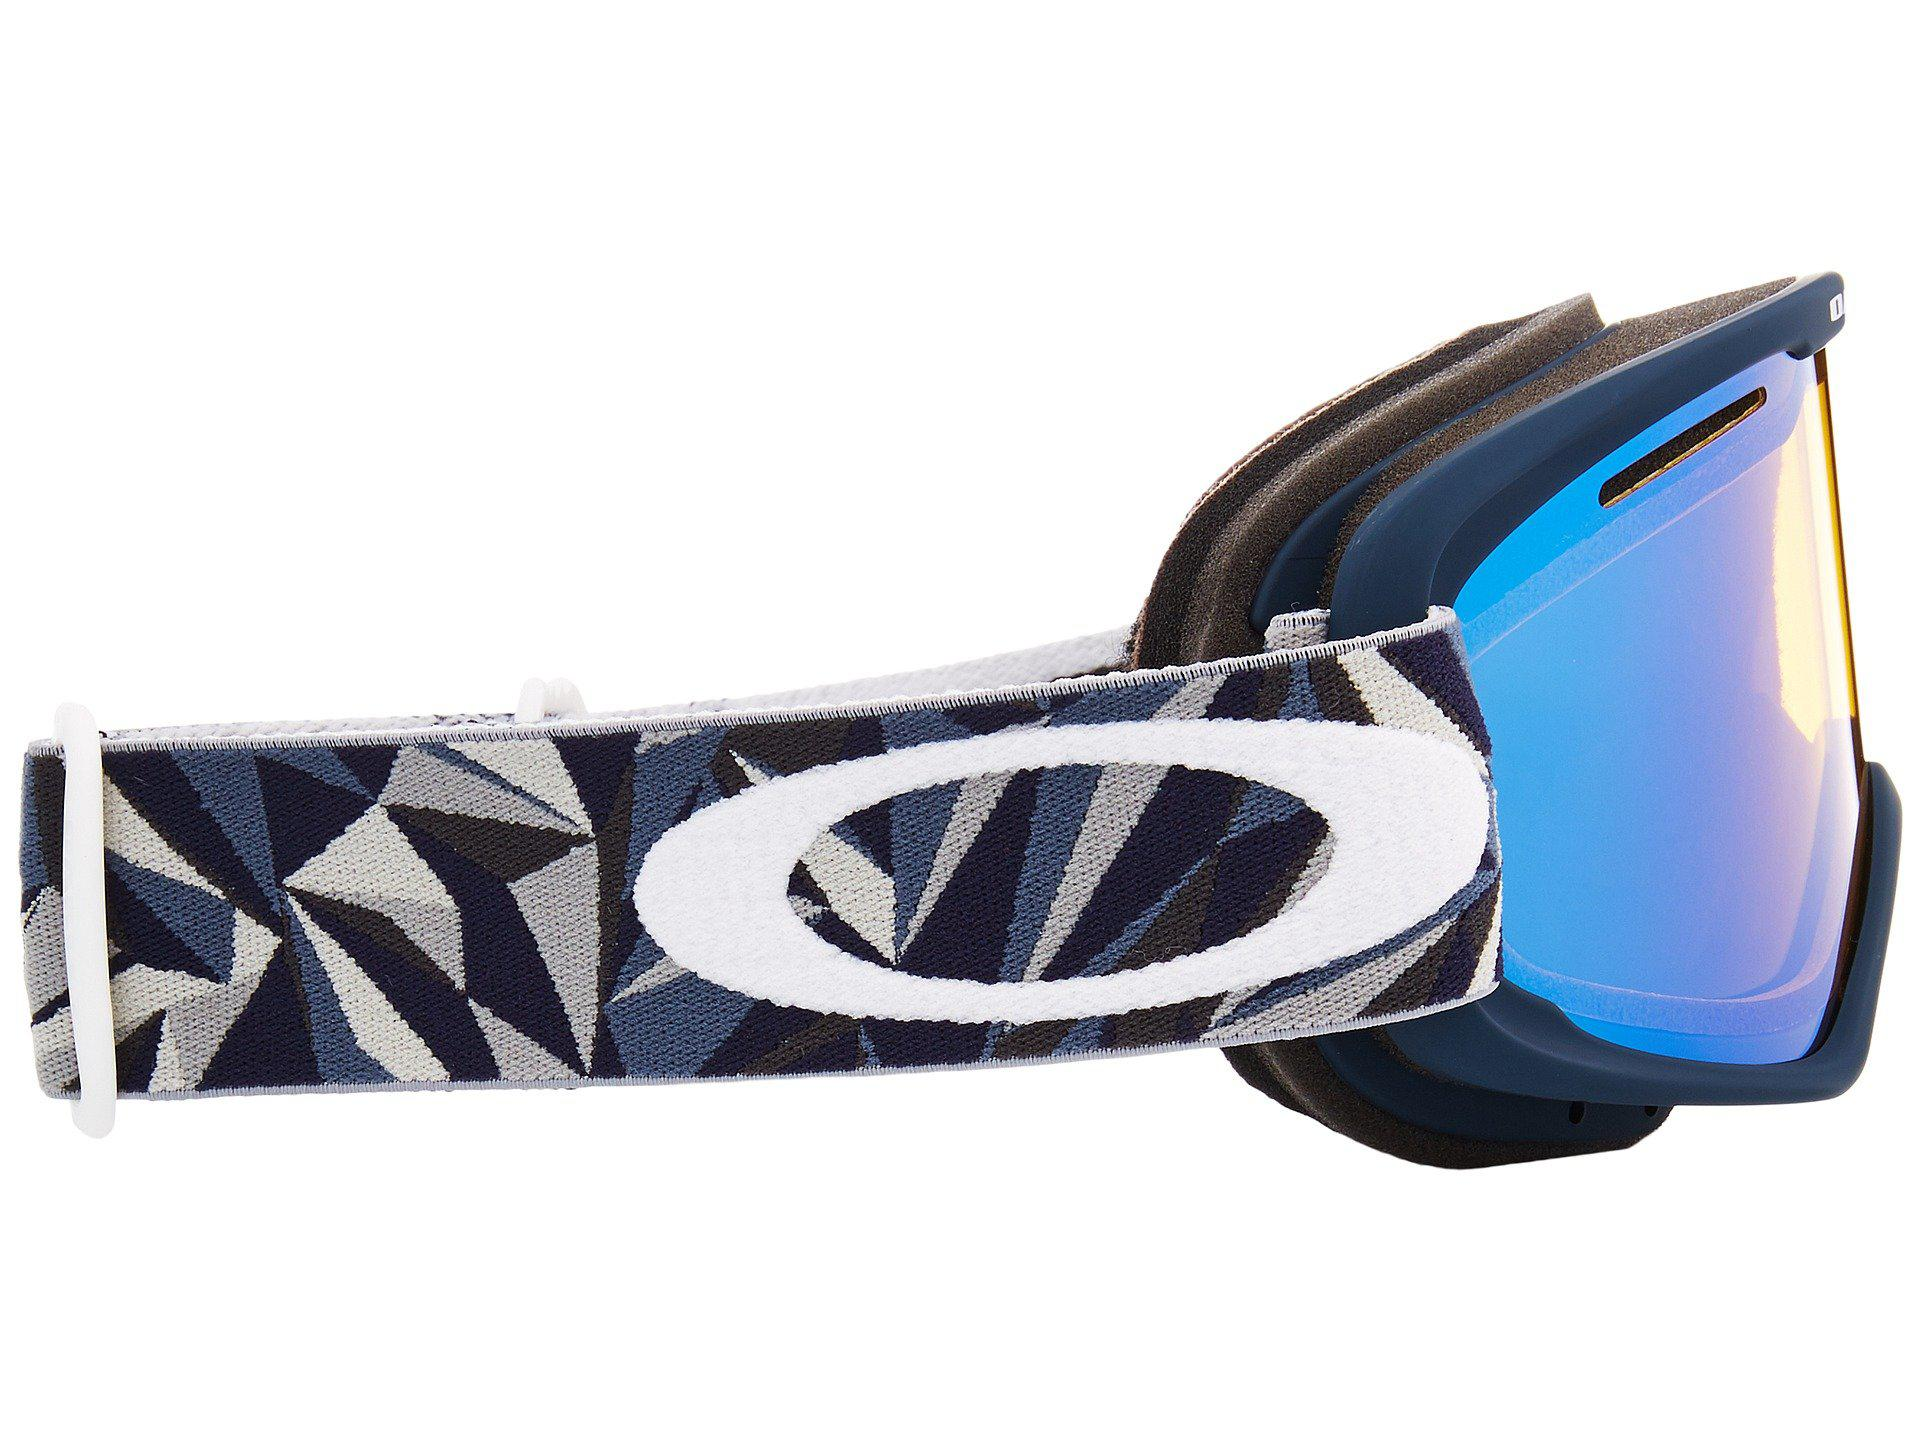 bfe728cc97 Lyst - Oakley O Frame 2.0 Xm (facet Iron Fathom W  High Intensity ...